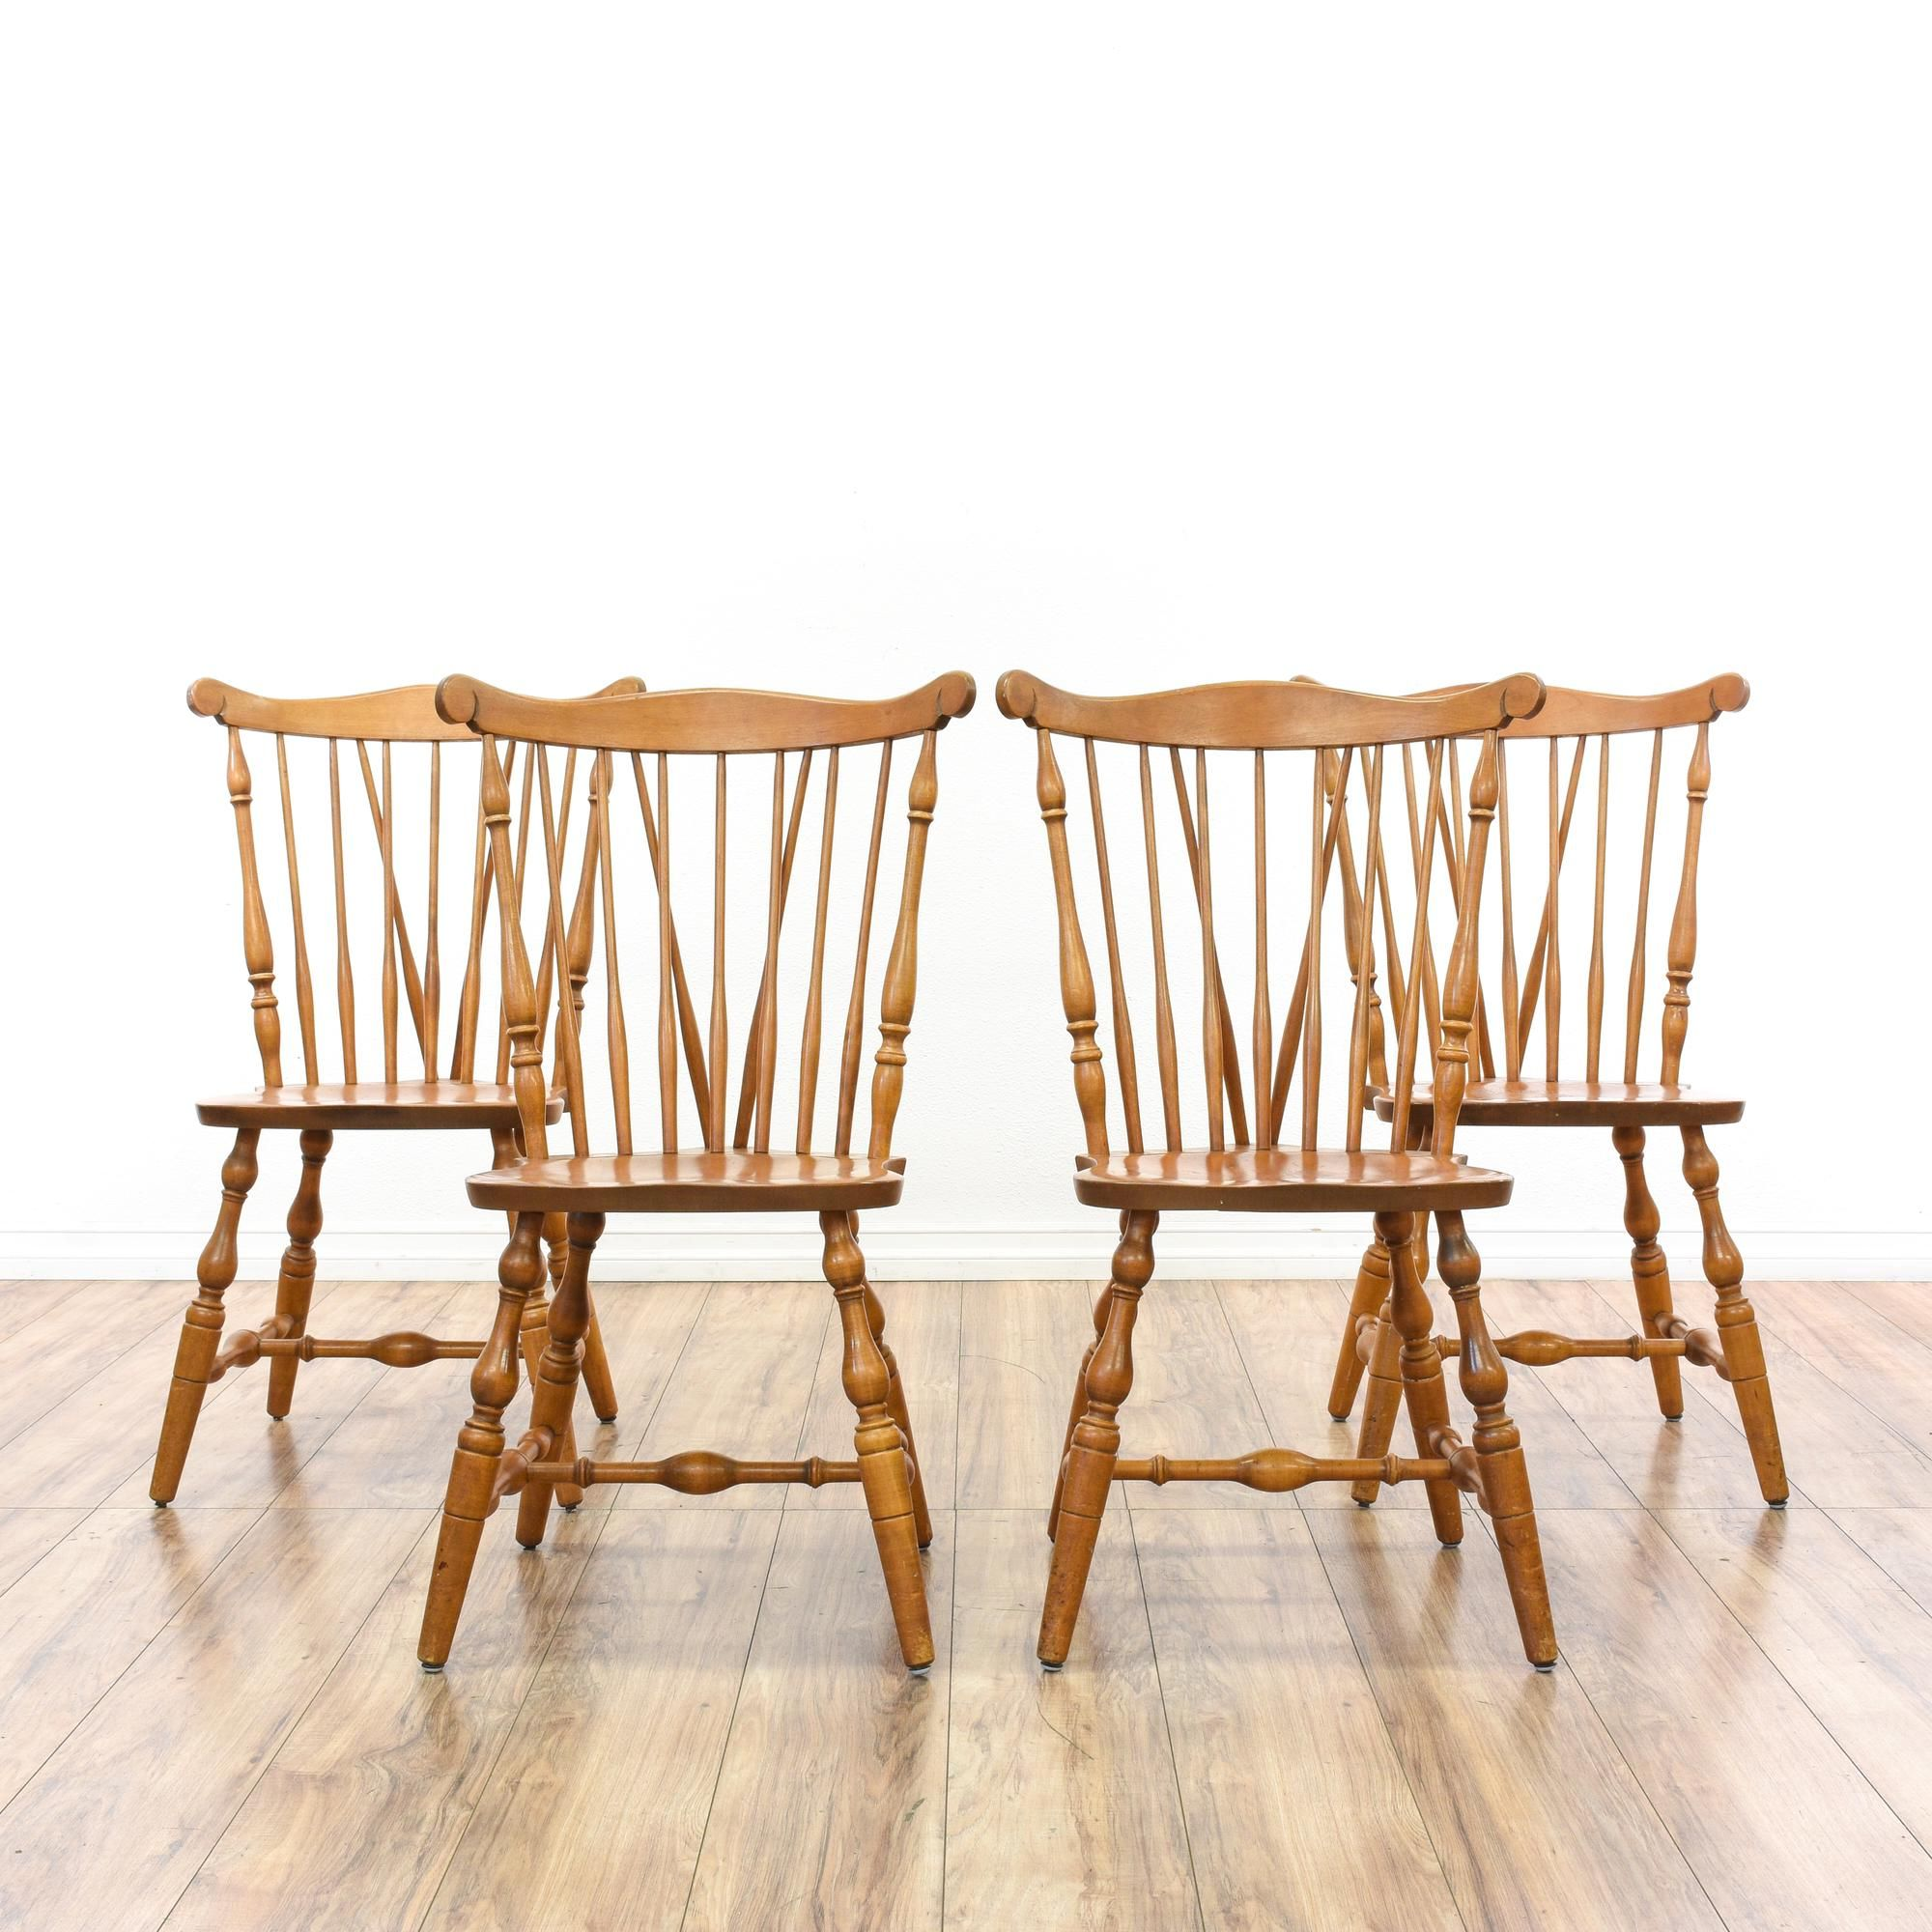 This Set Of 3 S Bent Bros Windsor Back Dining Chairs Is Featured In A Solid Maple Wood With A Glossy Finish Each Country Dining Chairs Chair Vintage Chairs